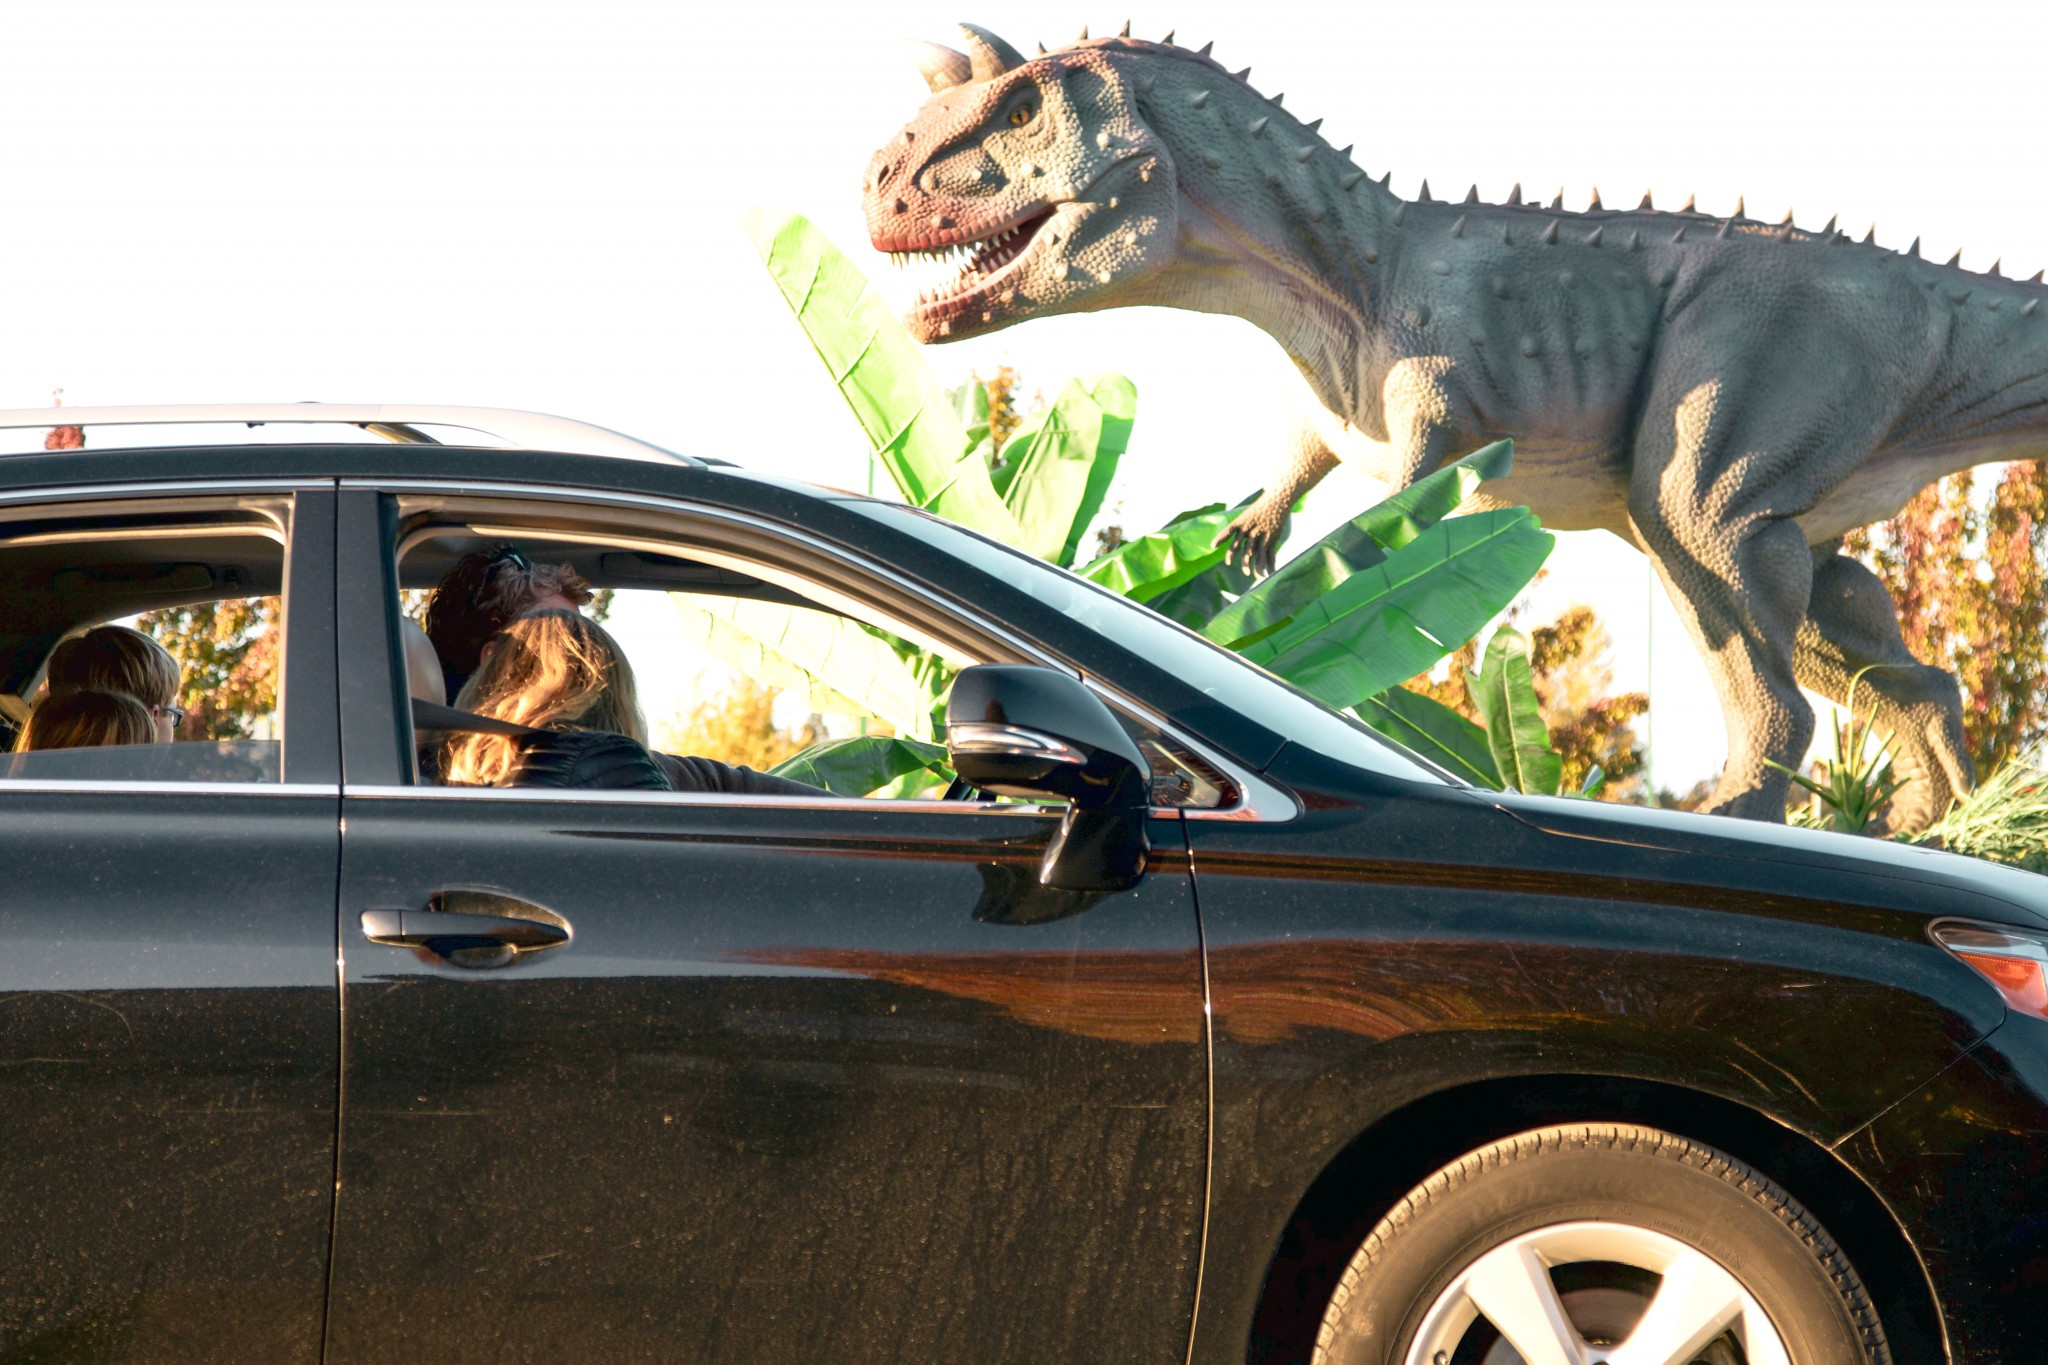 The Lucas County Fairgrounds will be transformed into a prehistoric dinosaur adventure as Dinosaur Adventure Drive-Thru roars into Toledo Aug. 7-15. (Photo courtesy of Pinnacle Production Group)